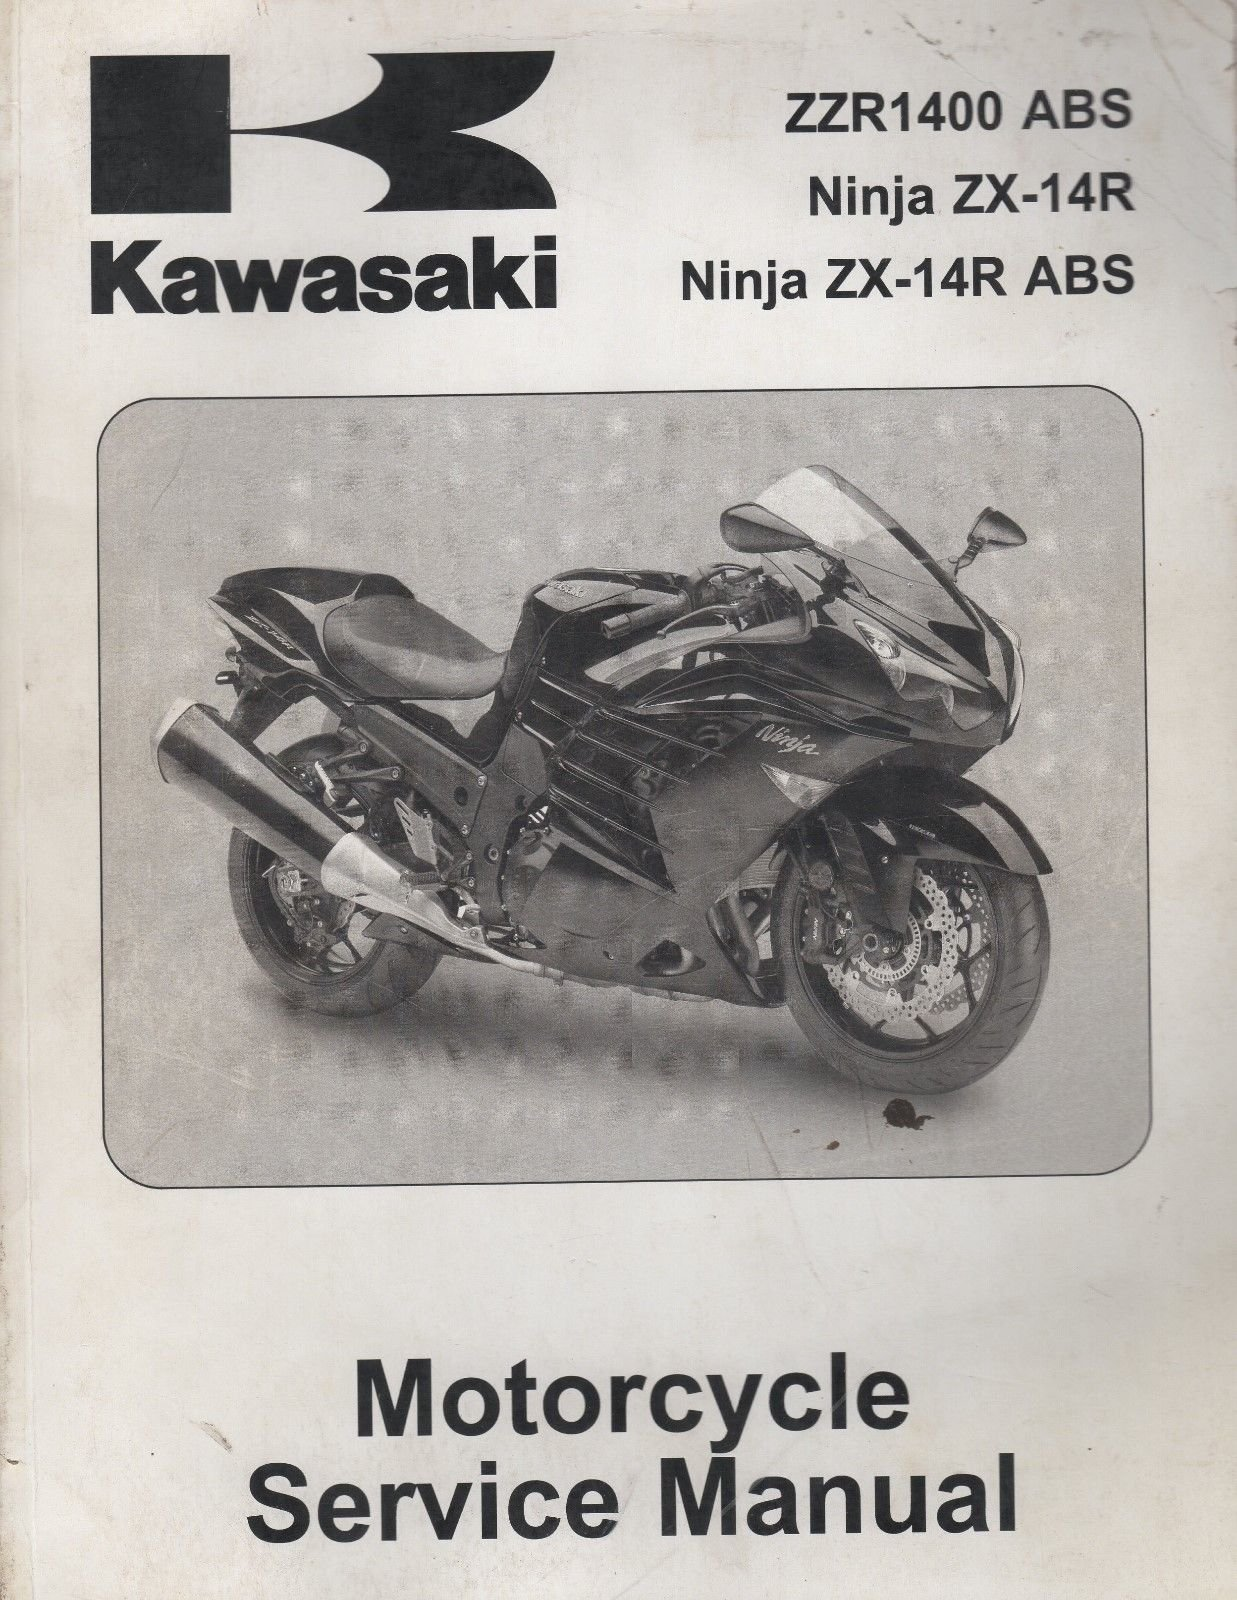 1995-97 Kawasaki Motorcycle Ninja Zx-6R Service Manual: Kawasaki:  Amazon.com: Books